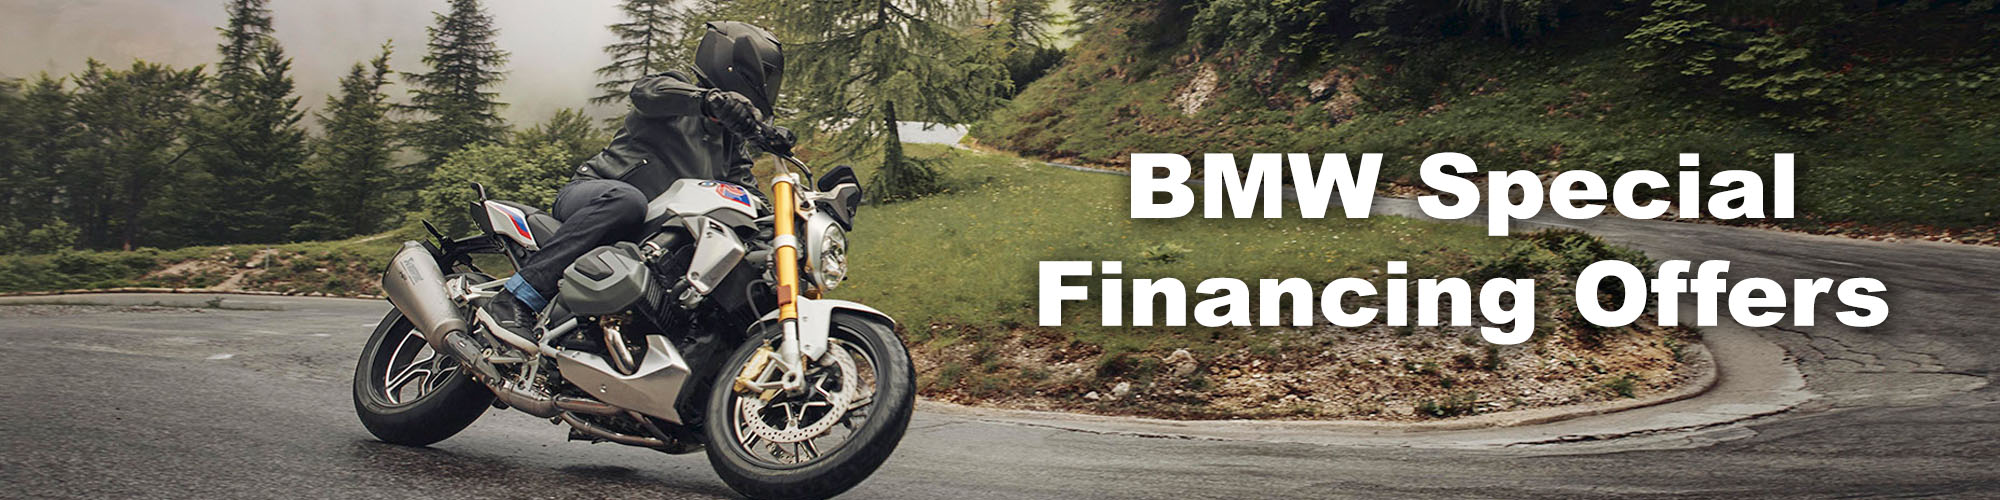 BMW Special Financing Offers